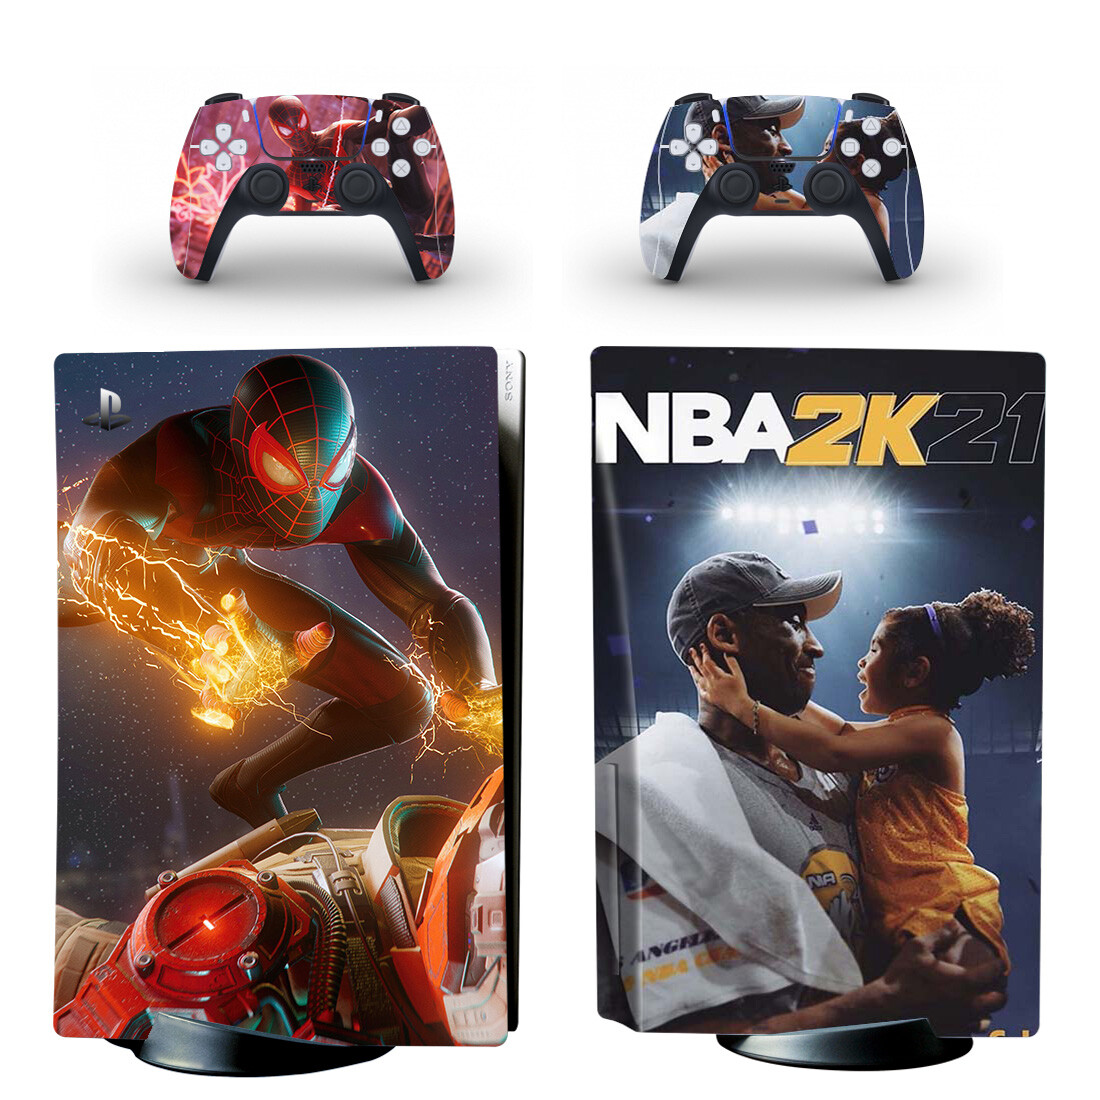 NBA 2K21 And Spider-Man Skin Sticker Decal For PlayStation 5